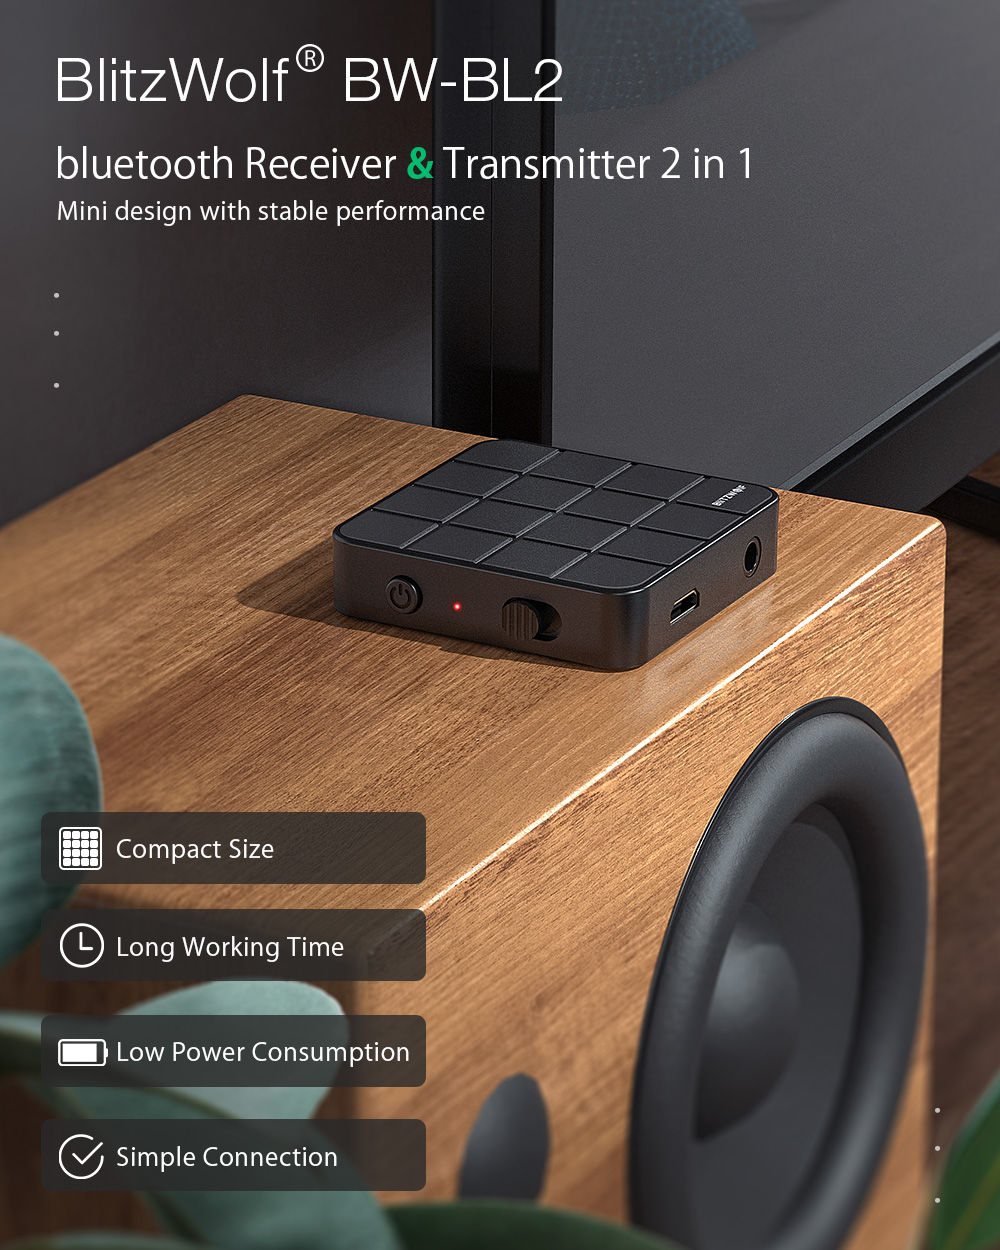 Blitzwolf BW-BL2 bluetooth receiver and transmitter